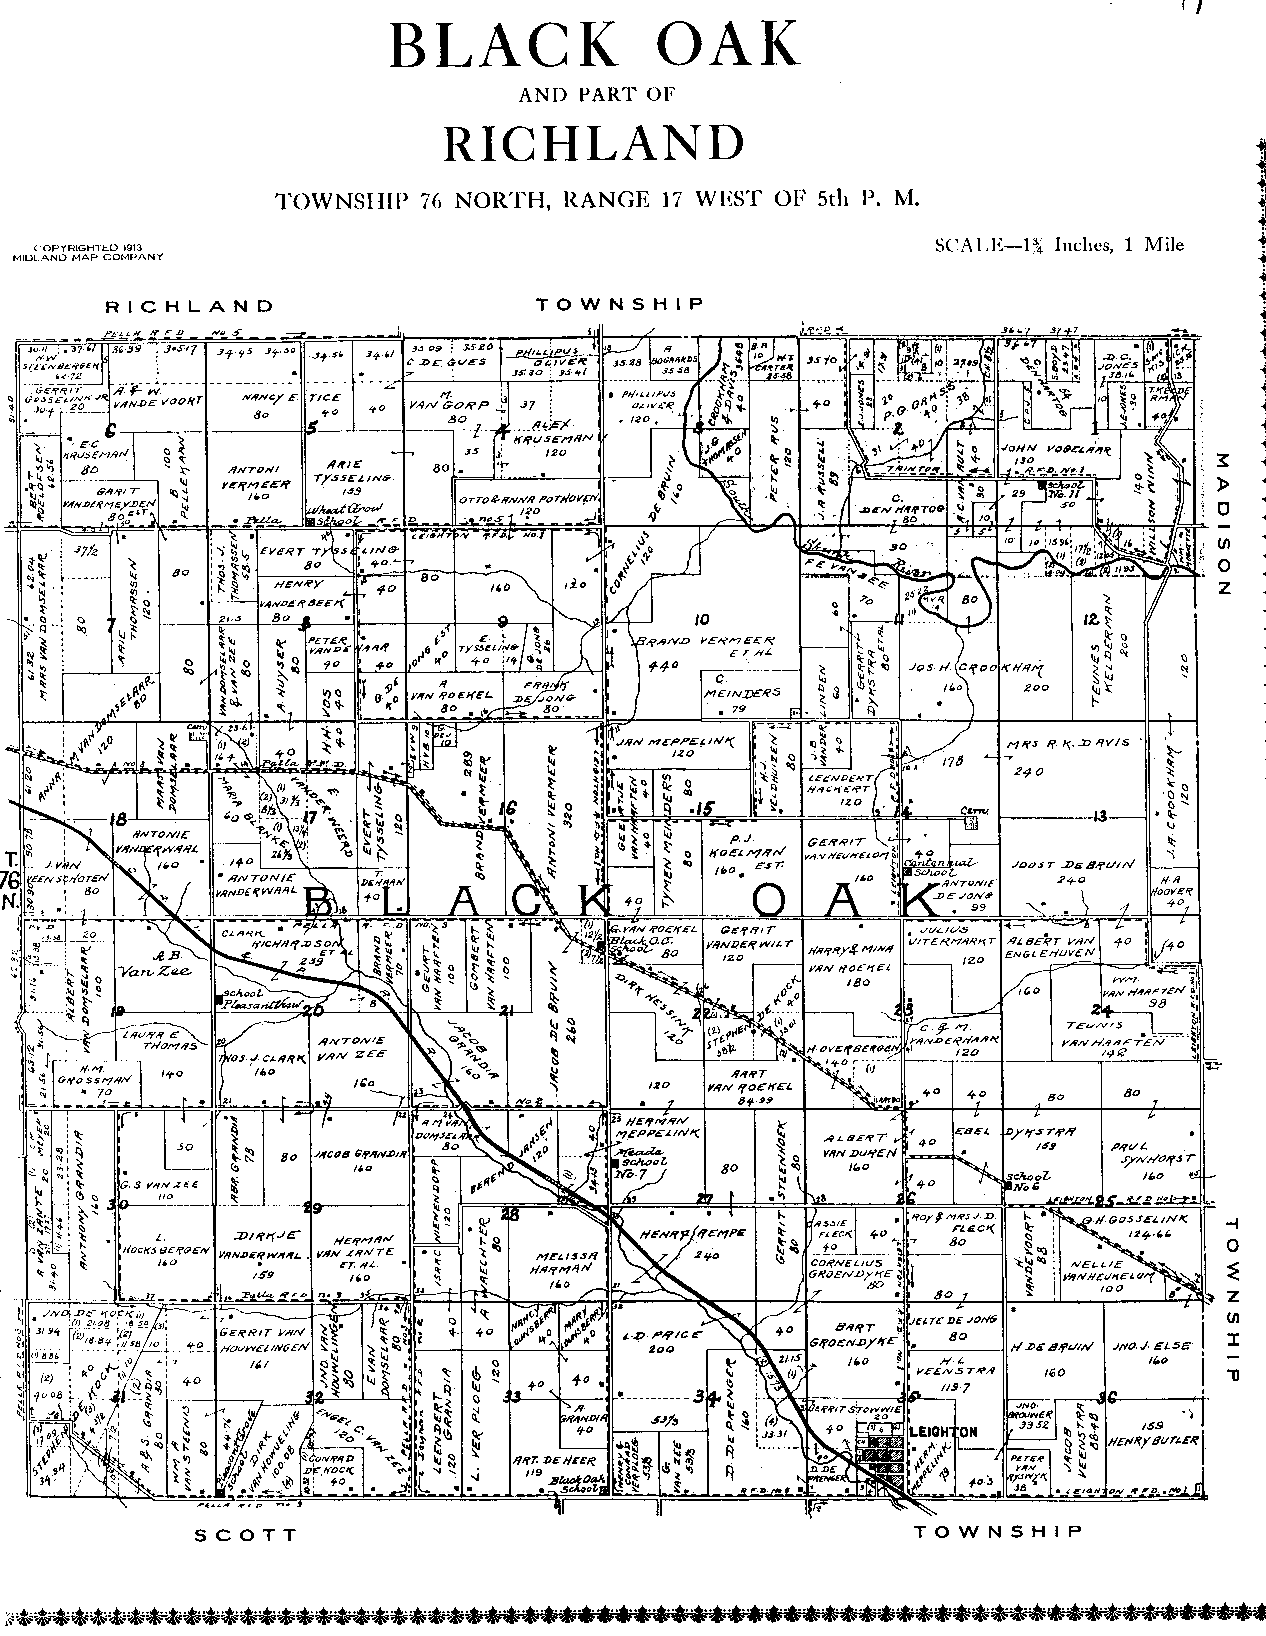 black singles in mahaska county Listed as a post office in mahaska county from 1884 to 1887, but the location not found hopewell  a post office (1857-65) in the eastern part of black oak township.